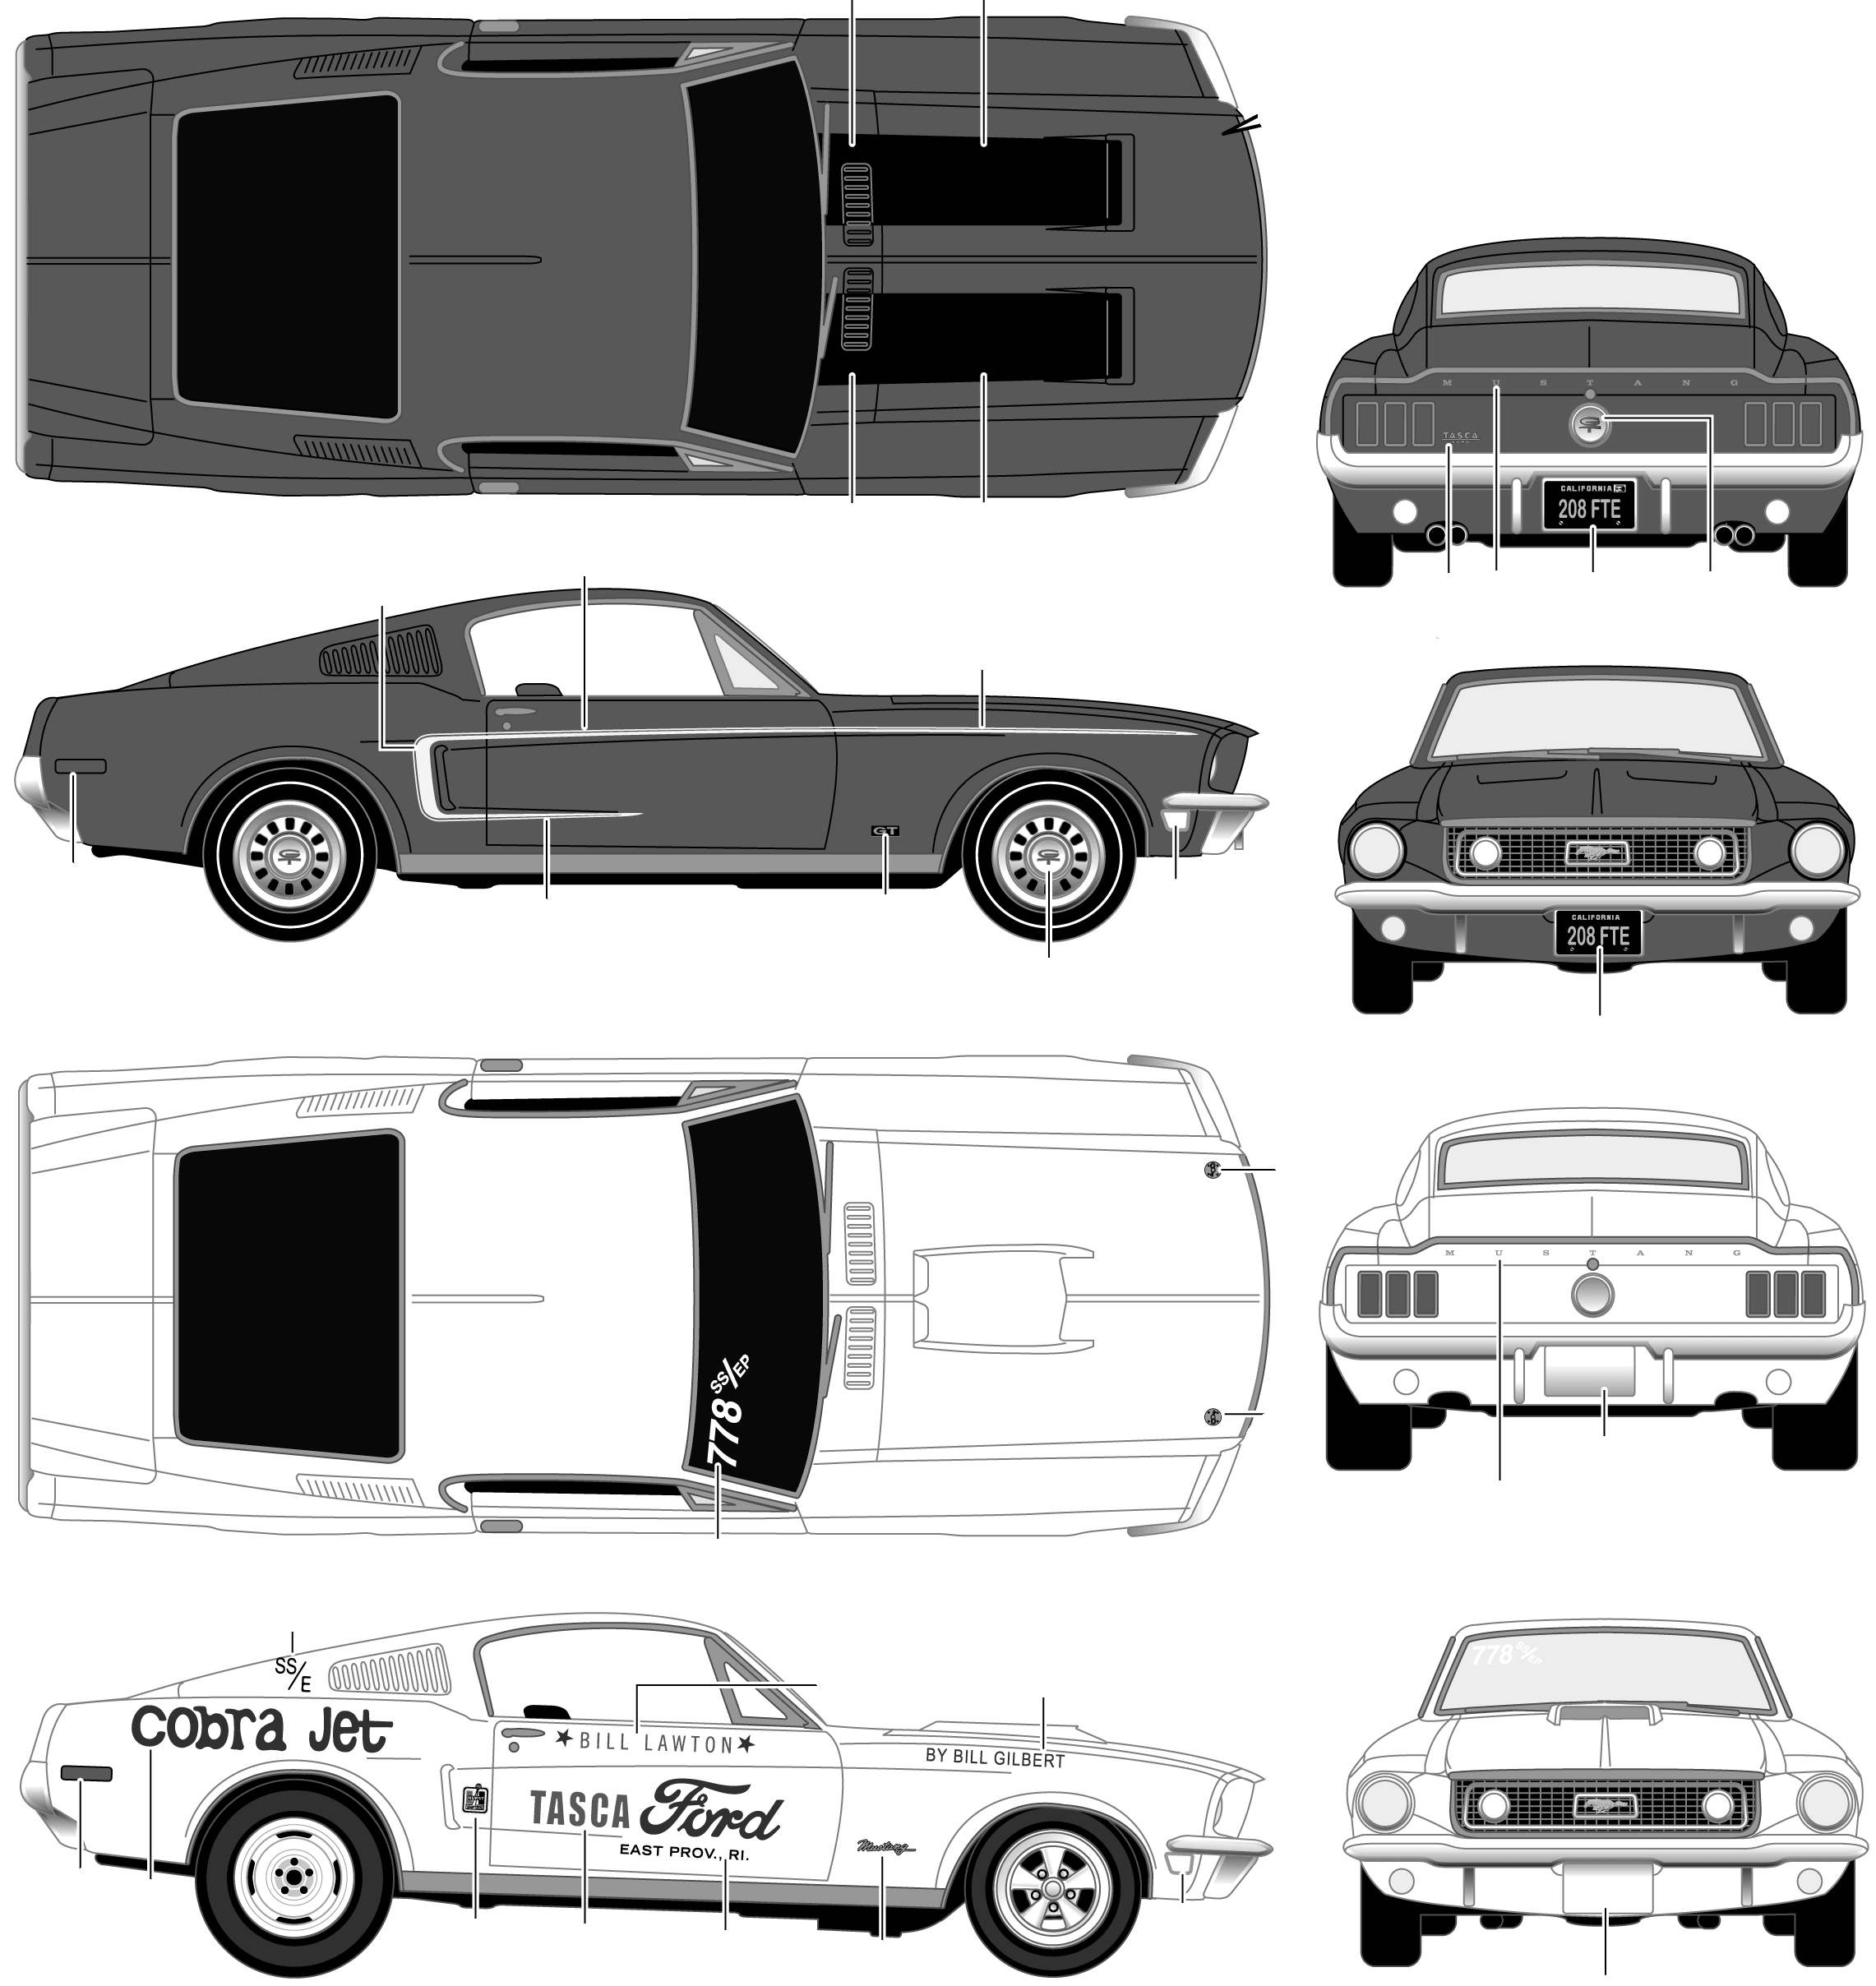 1968 Ford Mustang Gt Coupe Blueprint Dibujos De Coches Autos